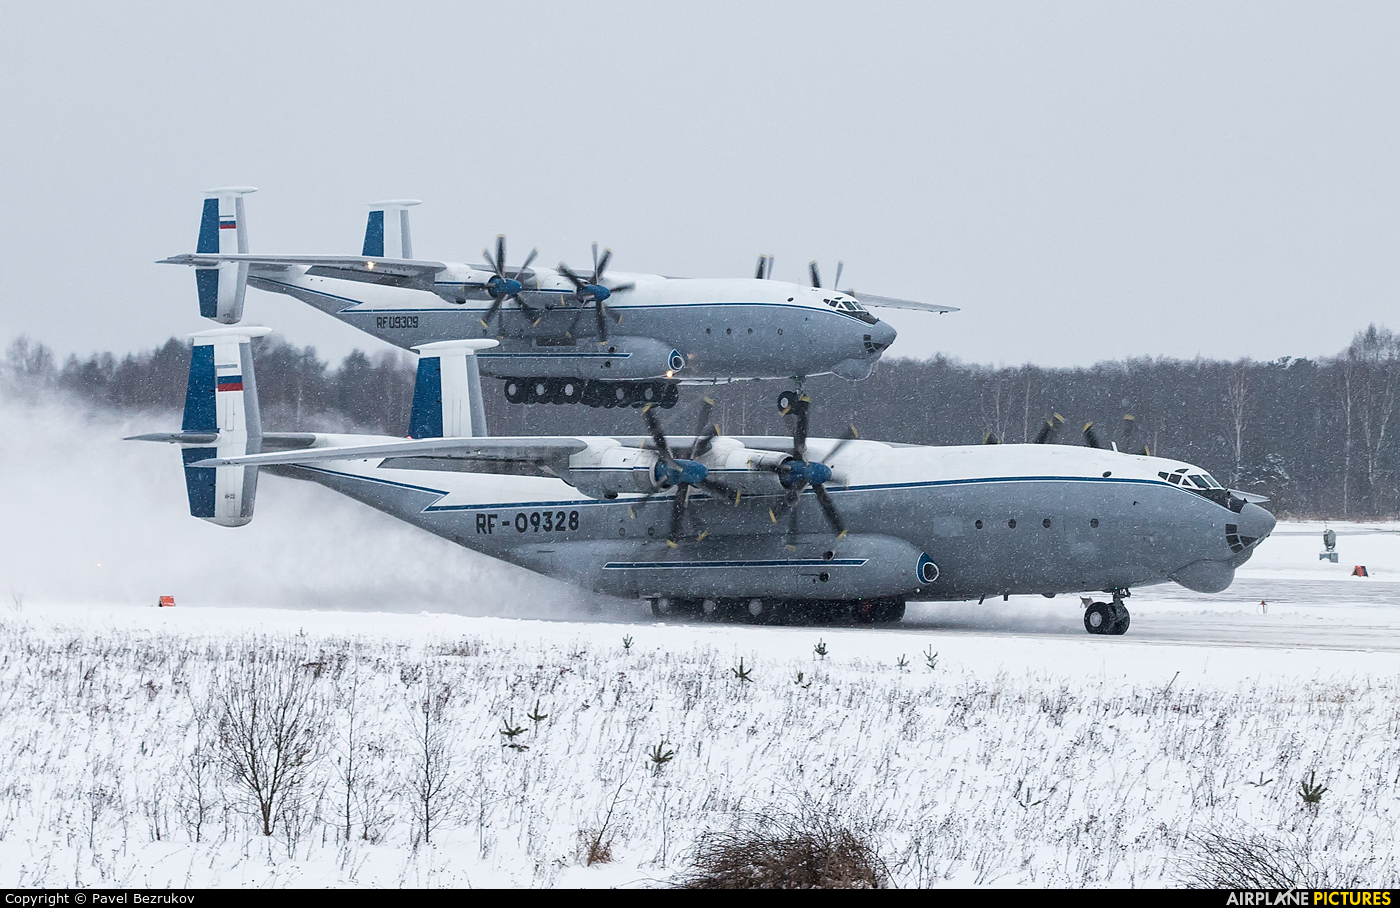 Russia - Air Force RF-09328 aircraft at Undisclosed Location